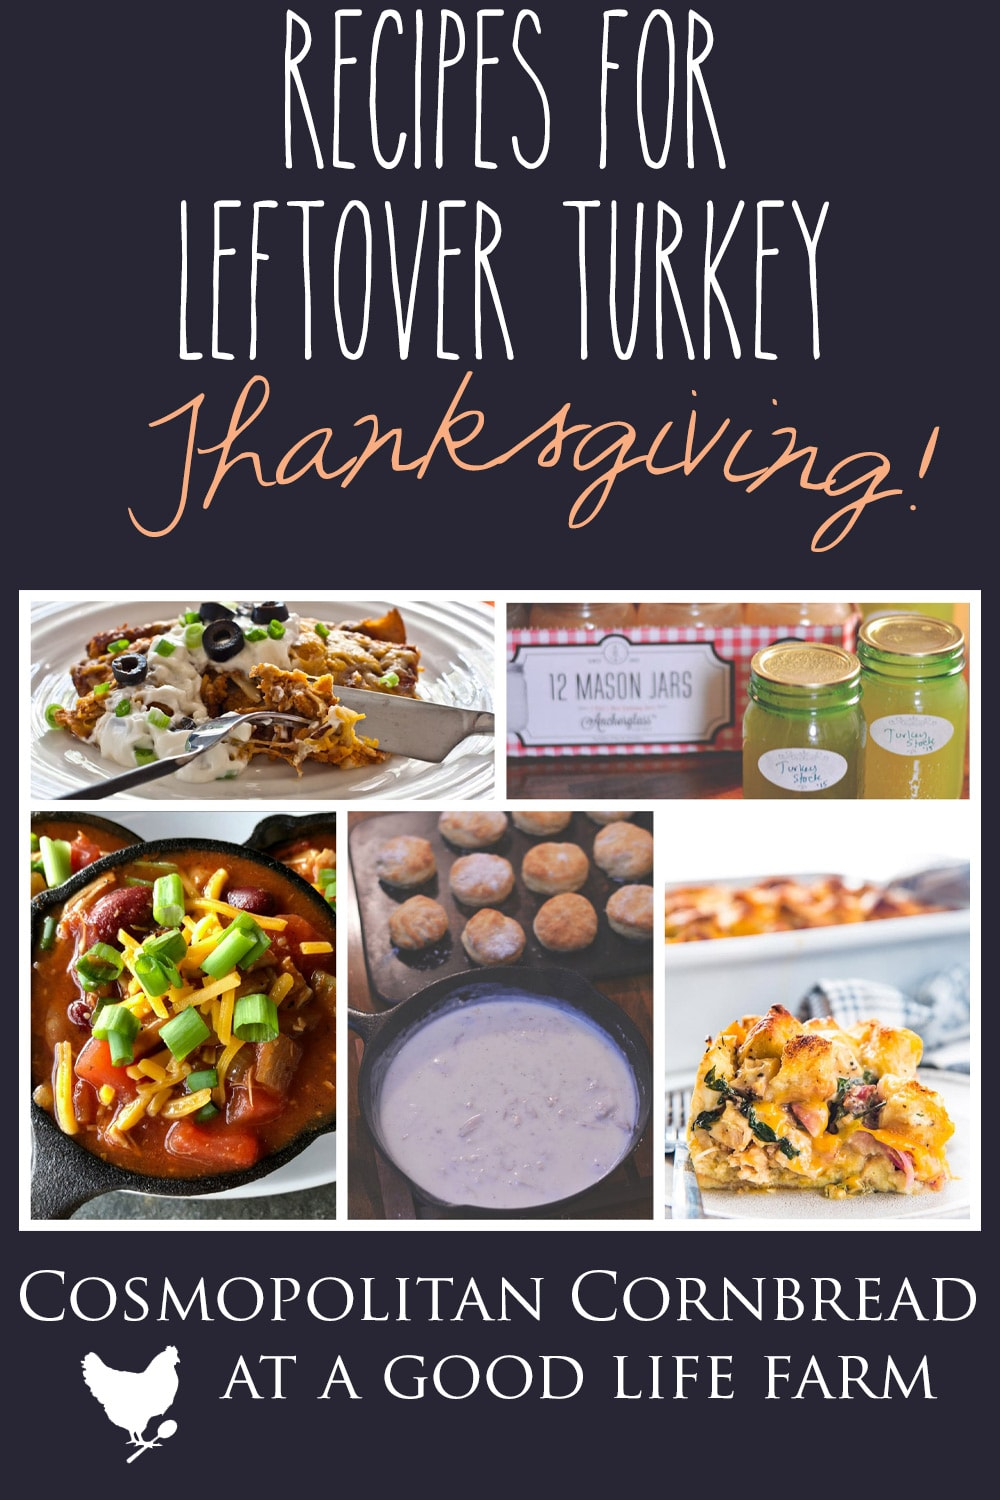 Recipes for using Leftover Turkey #thanksgiving #turkey #recipes